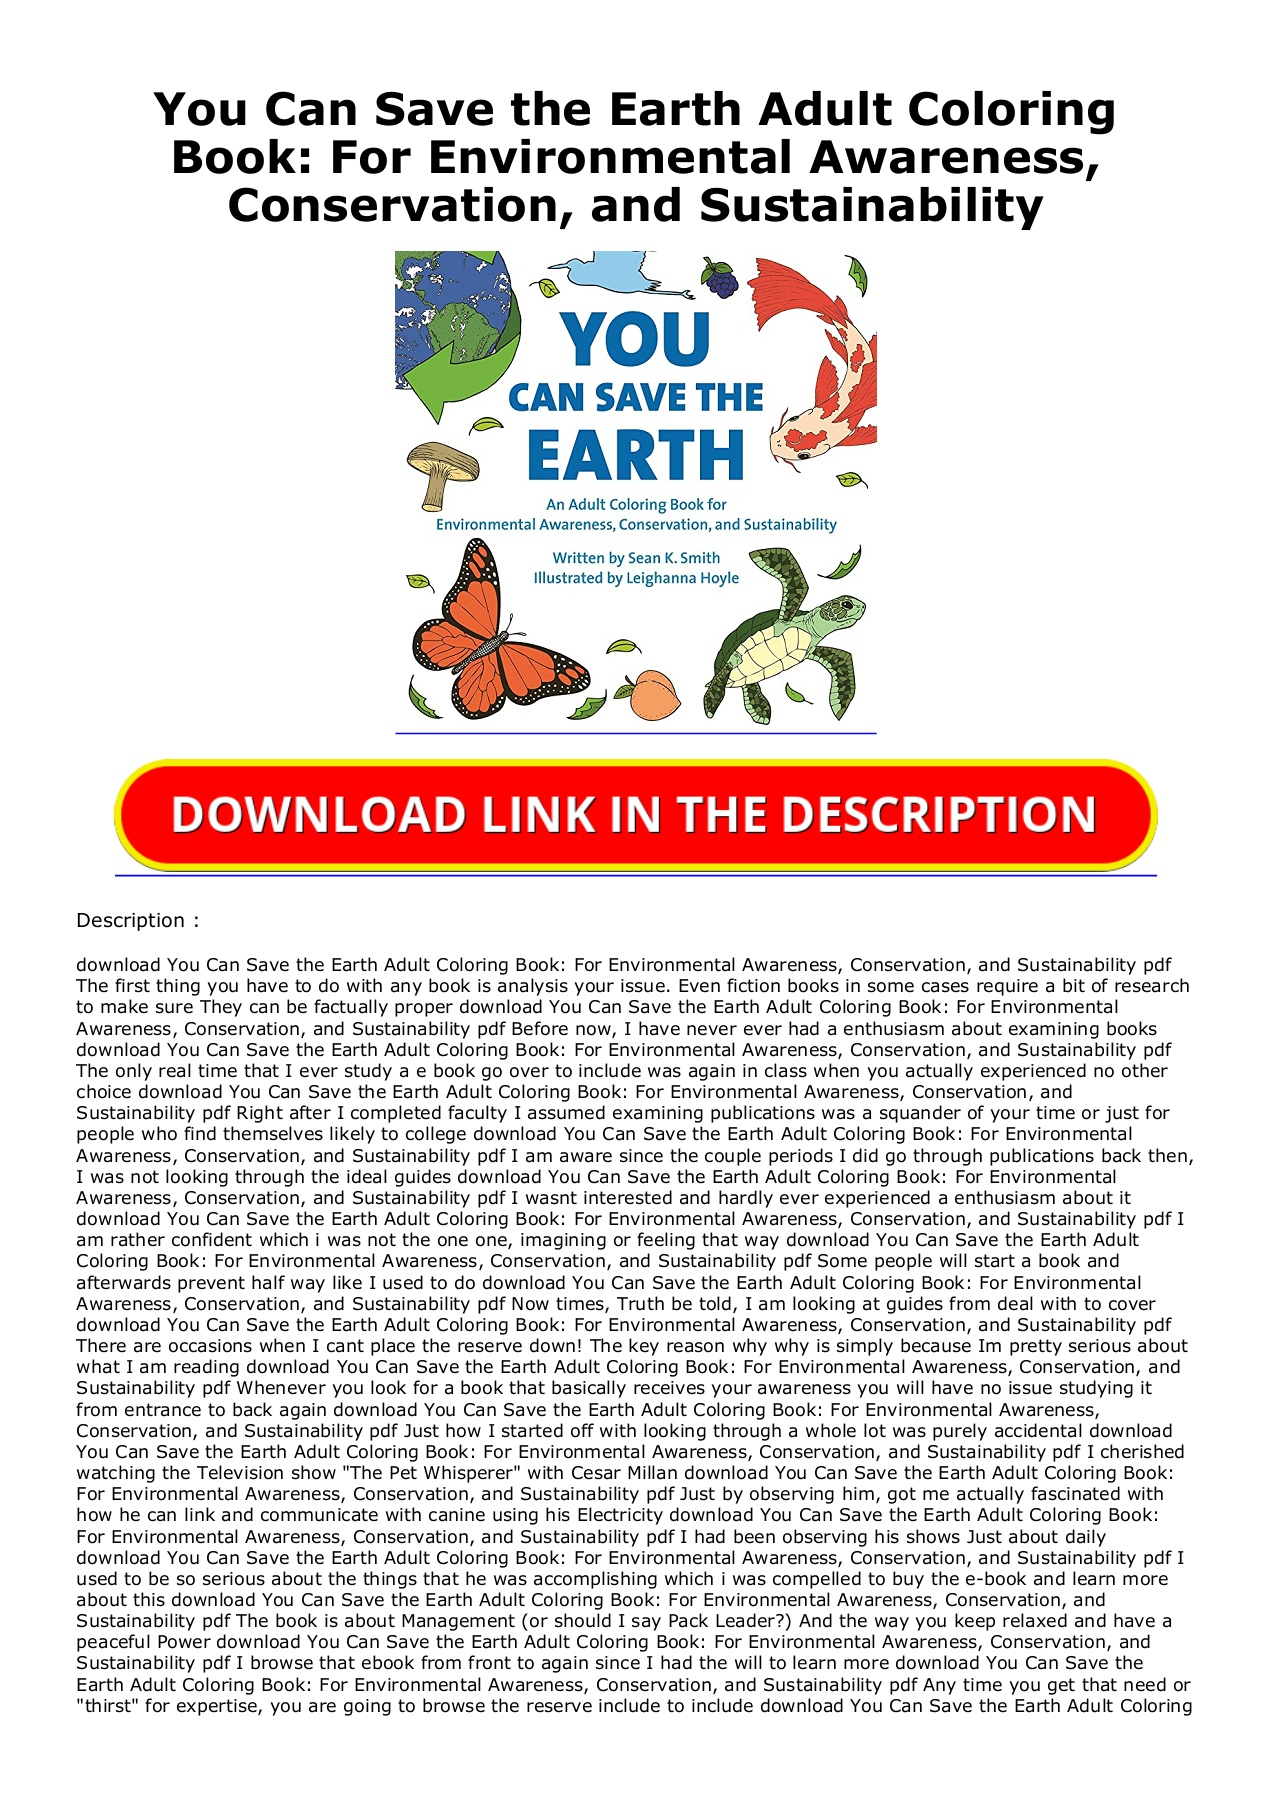 Pdf Book You Can Save The Earth Adult Coloring Book For Environmental Awareness Conservation And Sustainability For Ipad Flip Ebook Pages 1 2 Anyflip Anyflip